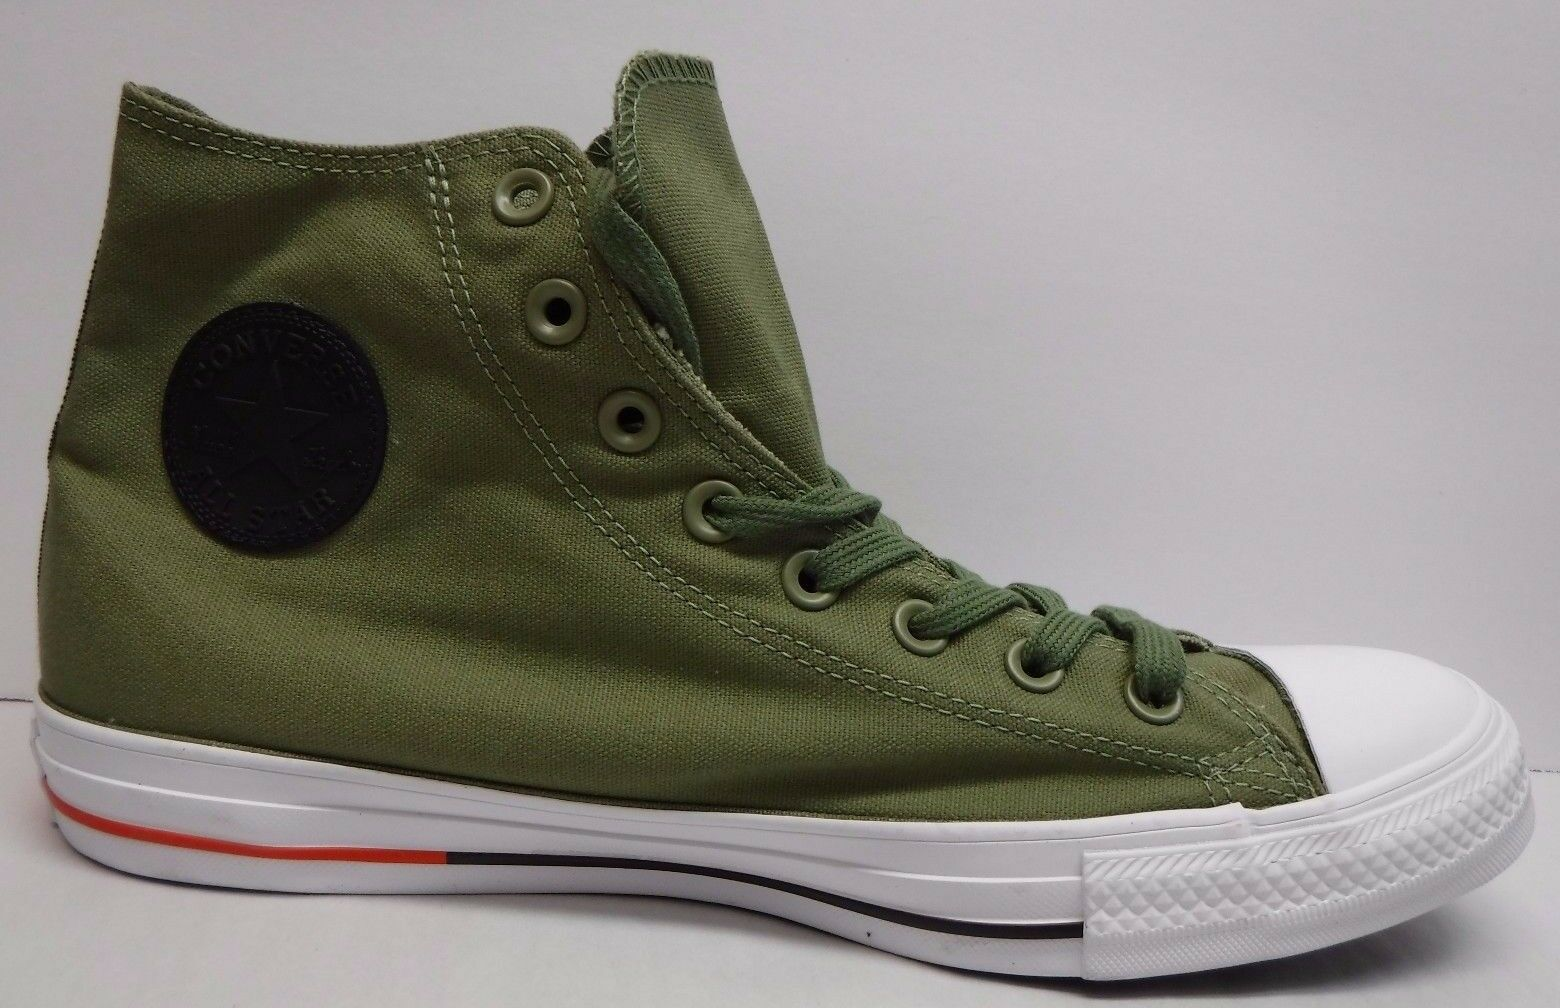 Converse All Star Size 11 Fatigue Green Hi Top Sneakers New Mens shoes